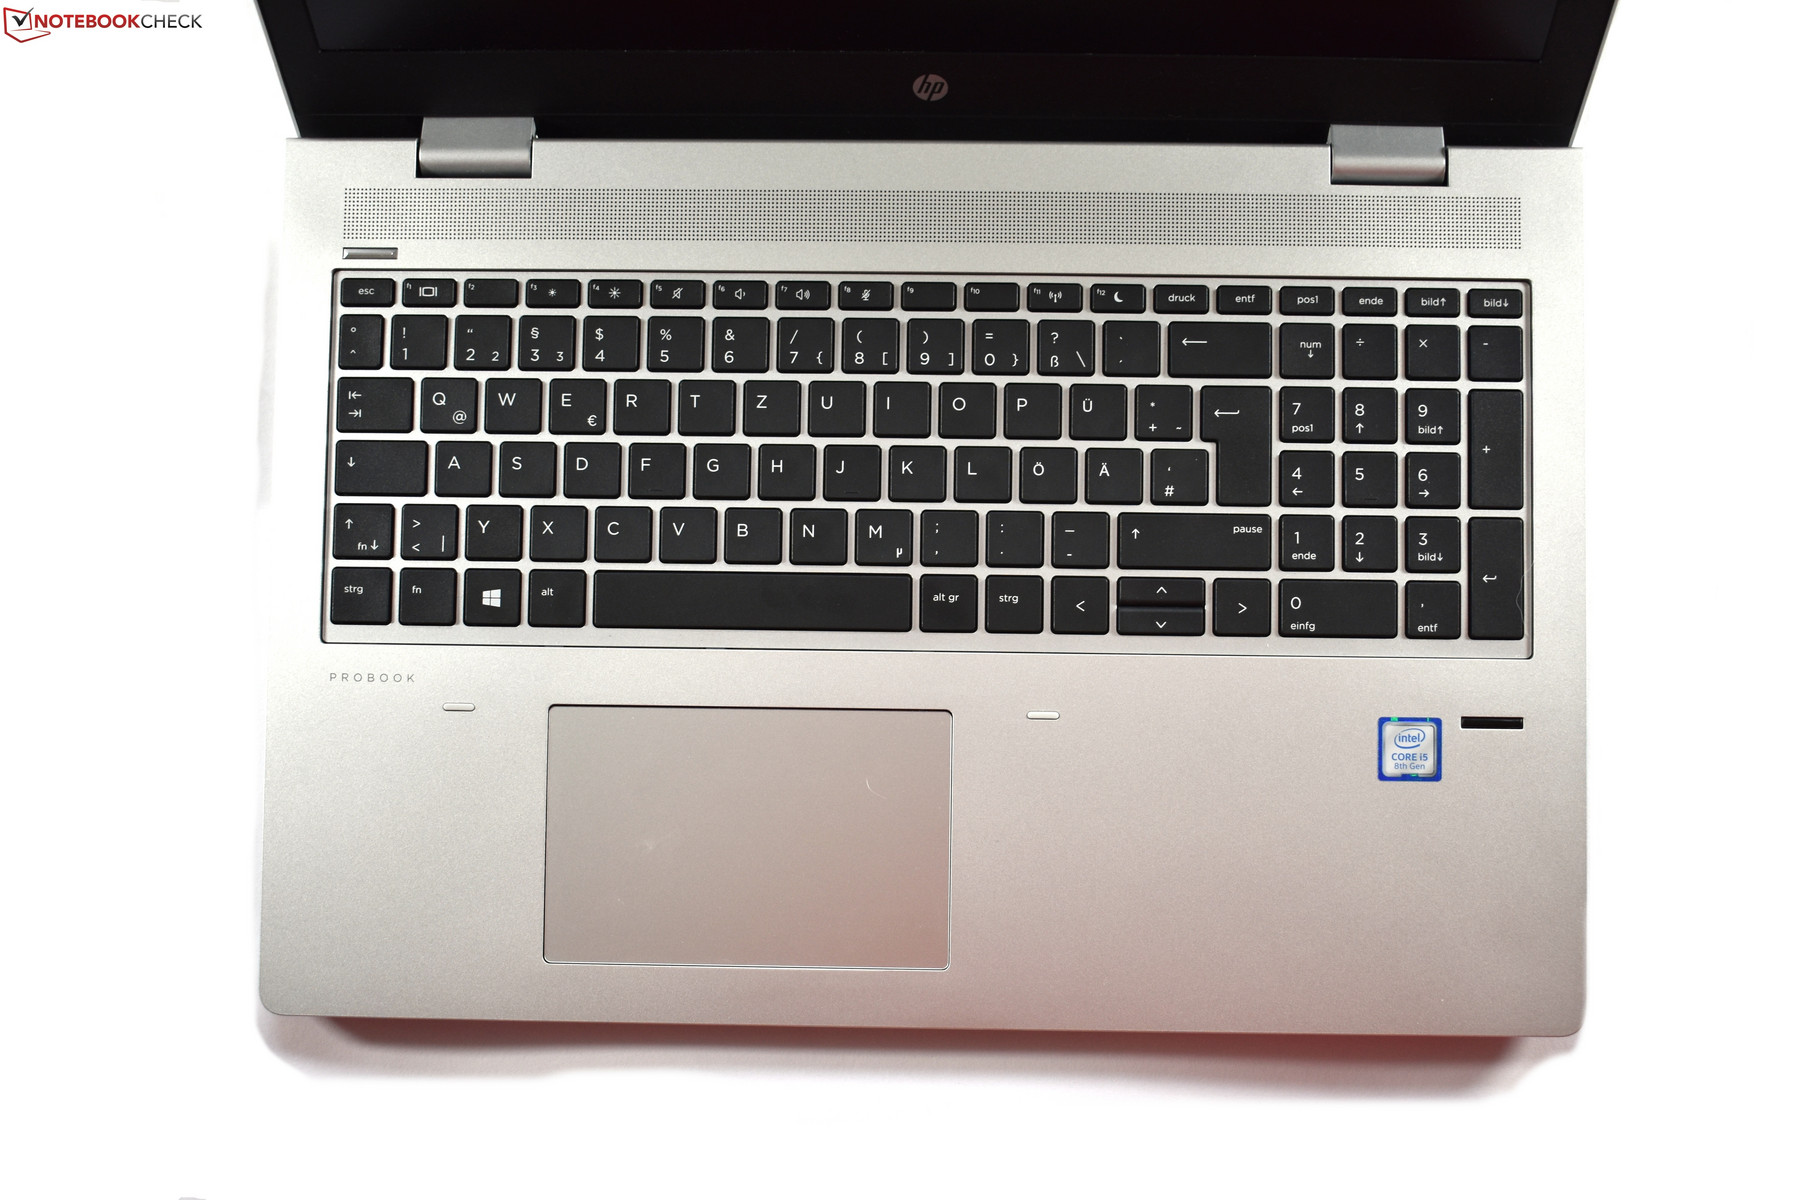 HP ProBook 650 G4 (i5-8250U, FHD IPS) Laptop Review - NotebookCheck